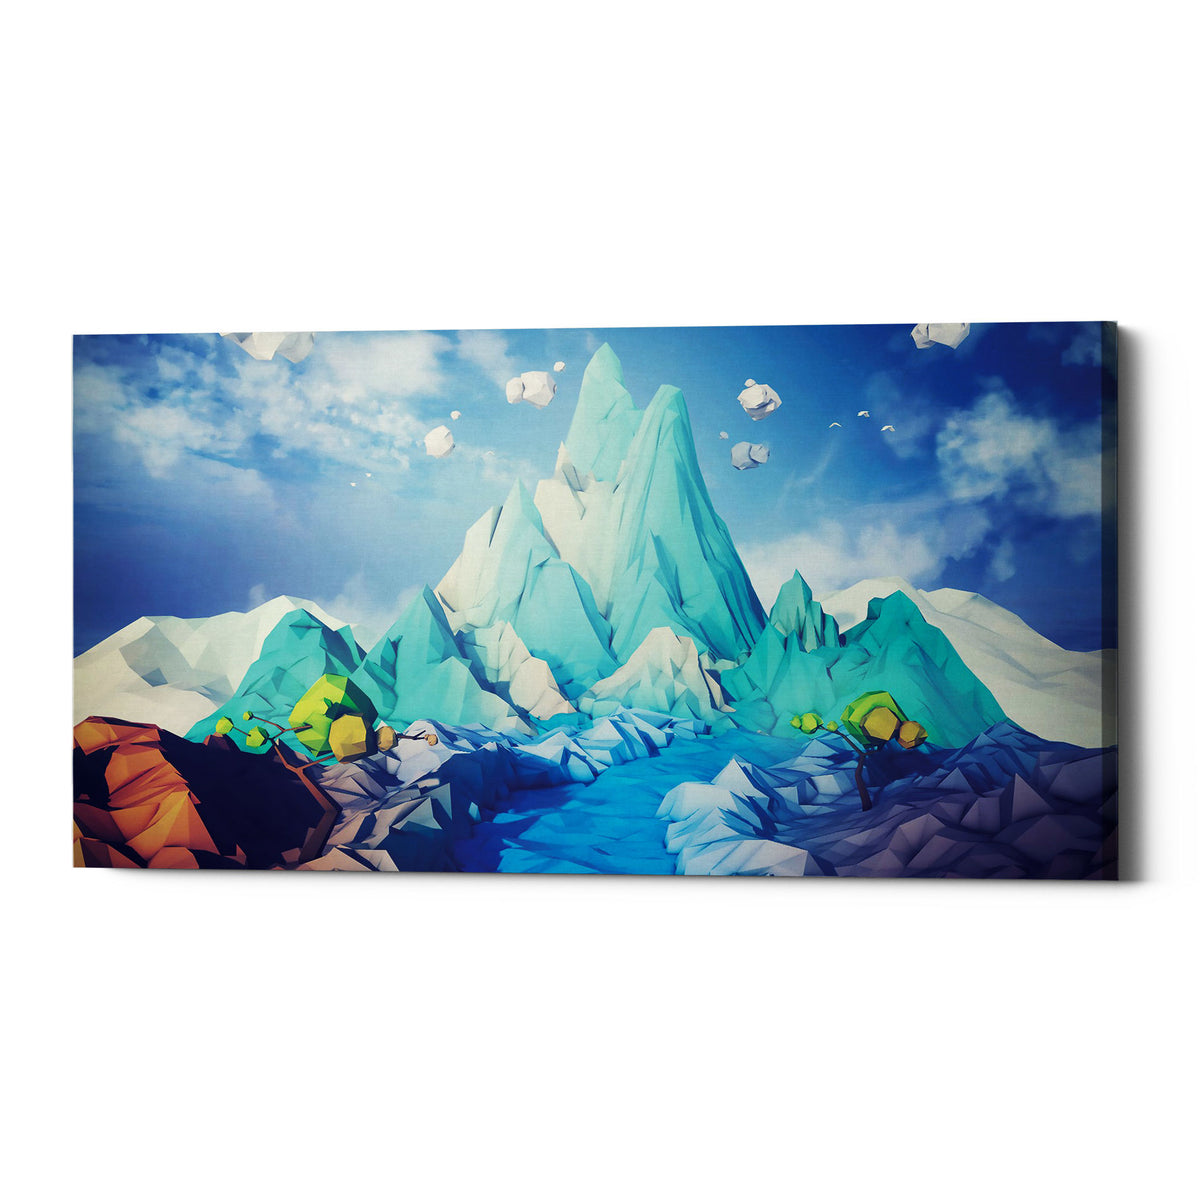 "Epic Graffiti ""Lonely Mountain"" by Jonathan Lam, Giclee Canvas Wall Art"